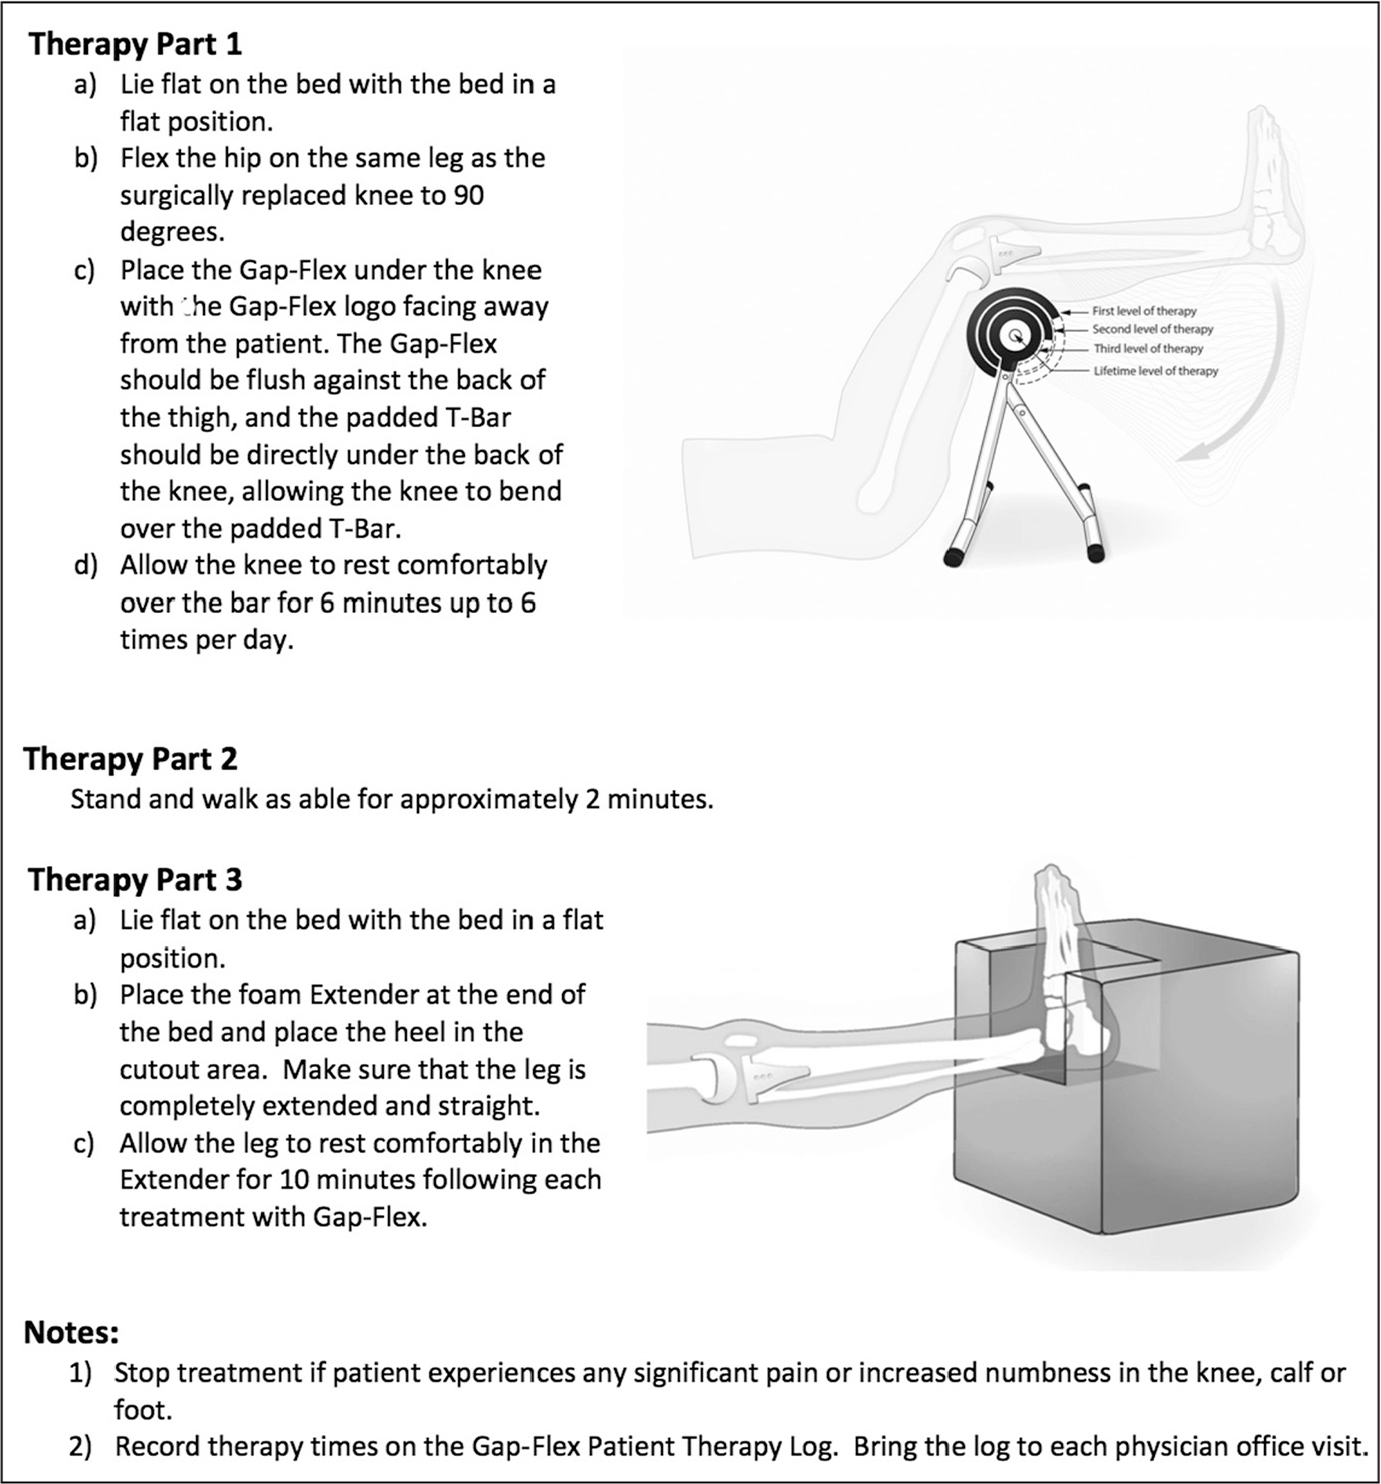 Gravity-assisted passive flexion (GAP-FLEX) therapy guidelines for flexion and extension.